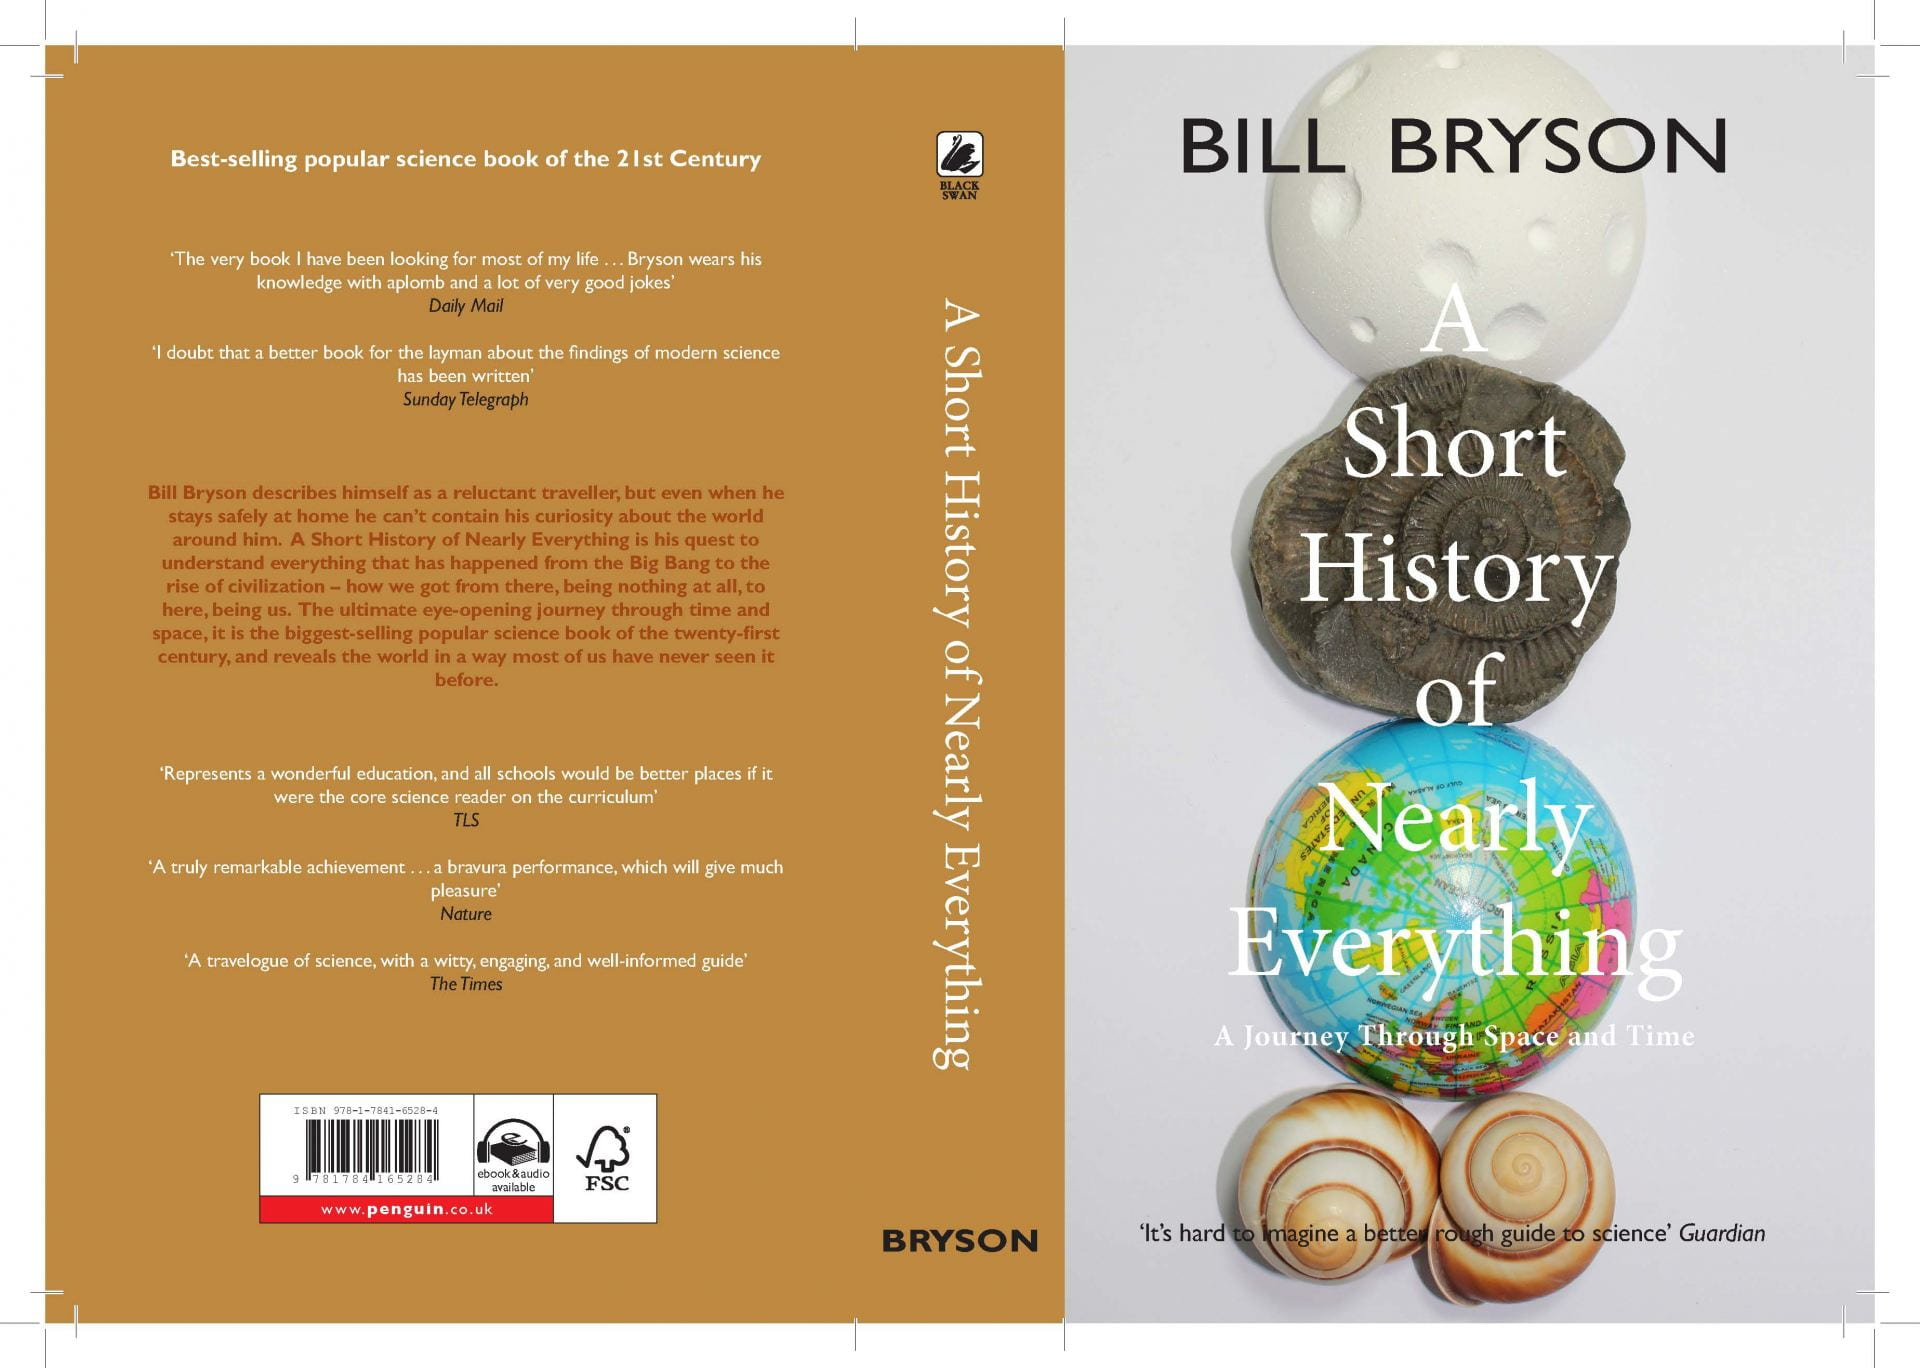 Photographic cover with stacked shells on a globe on Bill Bryson's 'A short history of nearly everything' and back blurb.